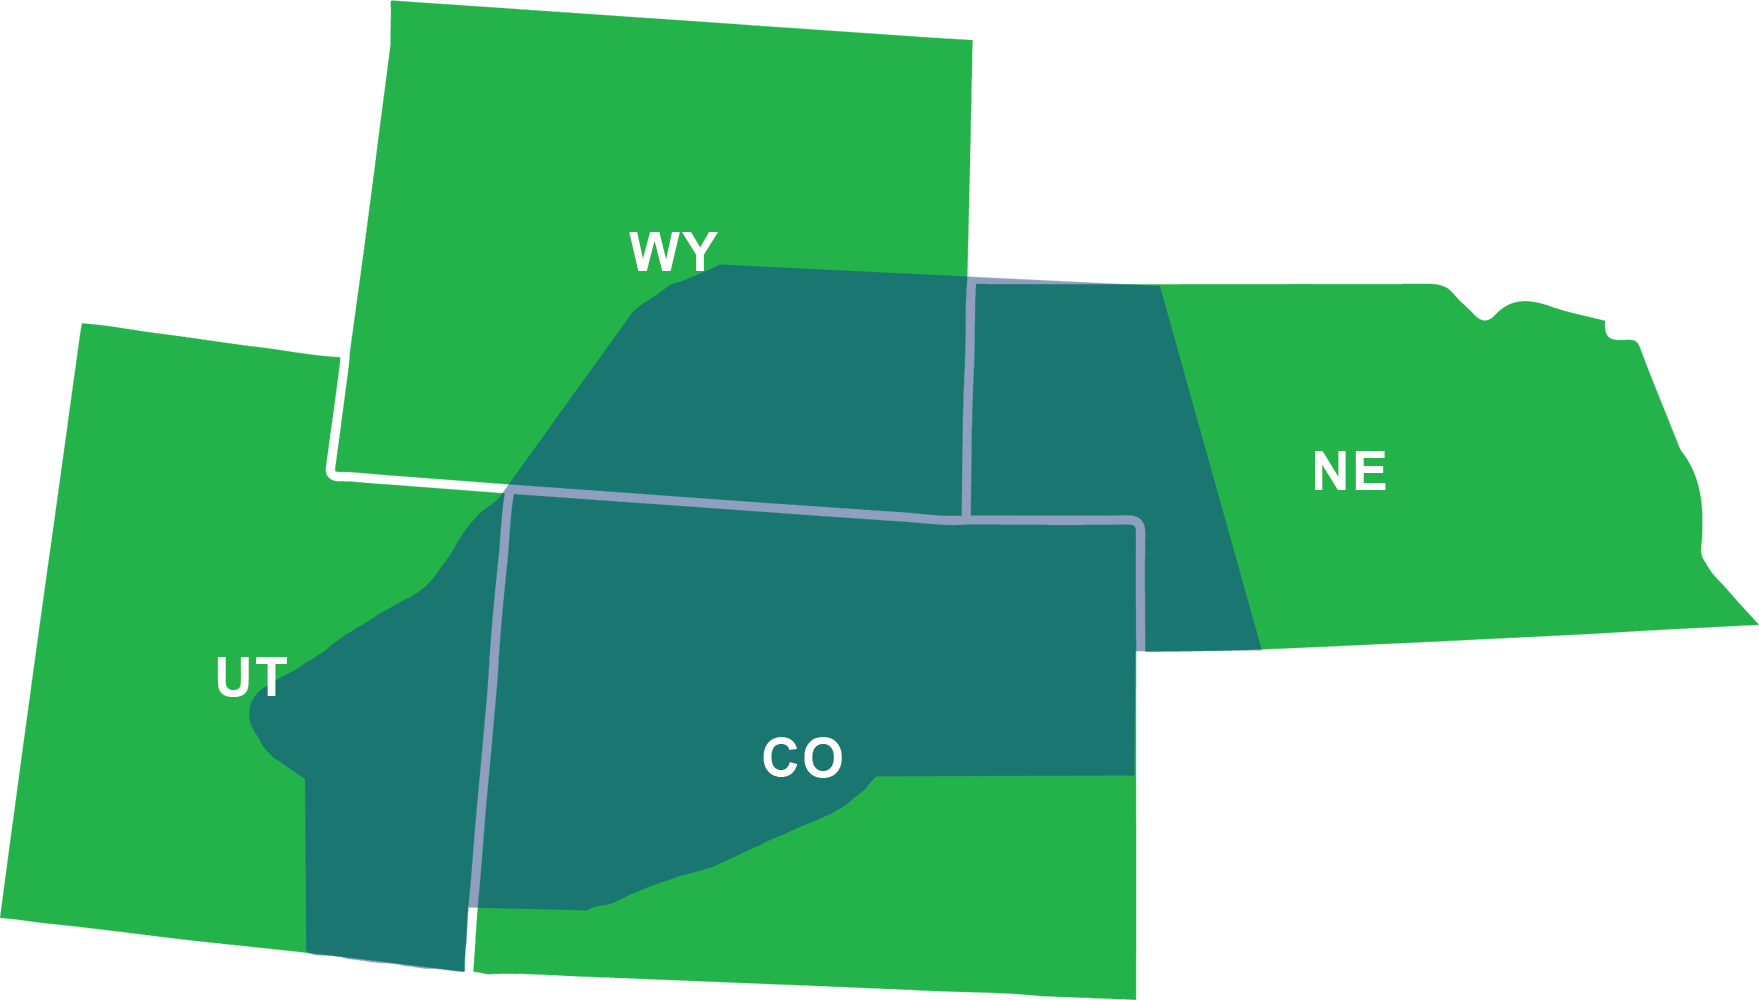 Cumberland Buildings by area - CO, NE, UT (East), WY - Abbreviated.png